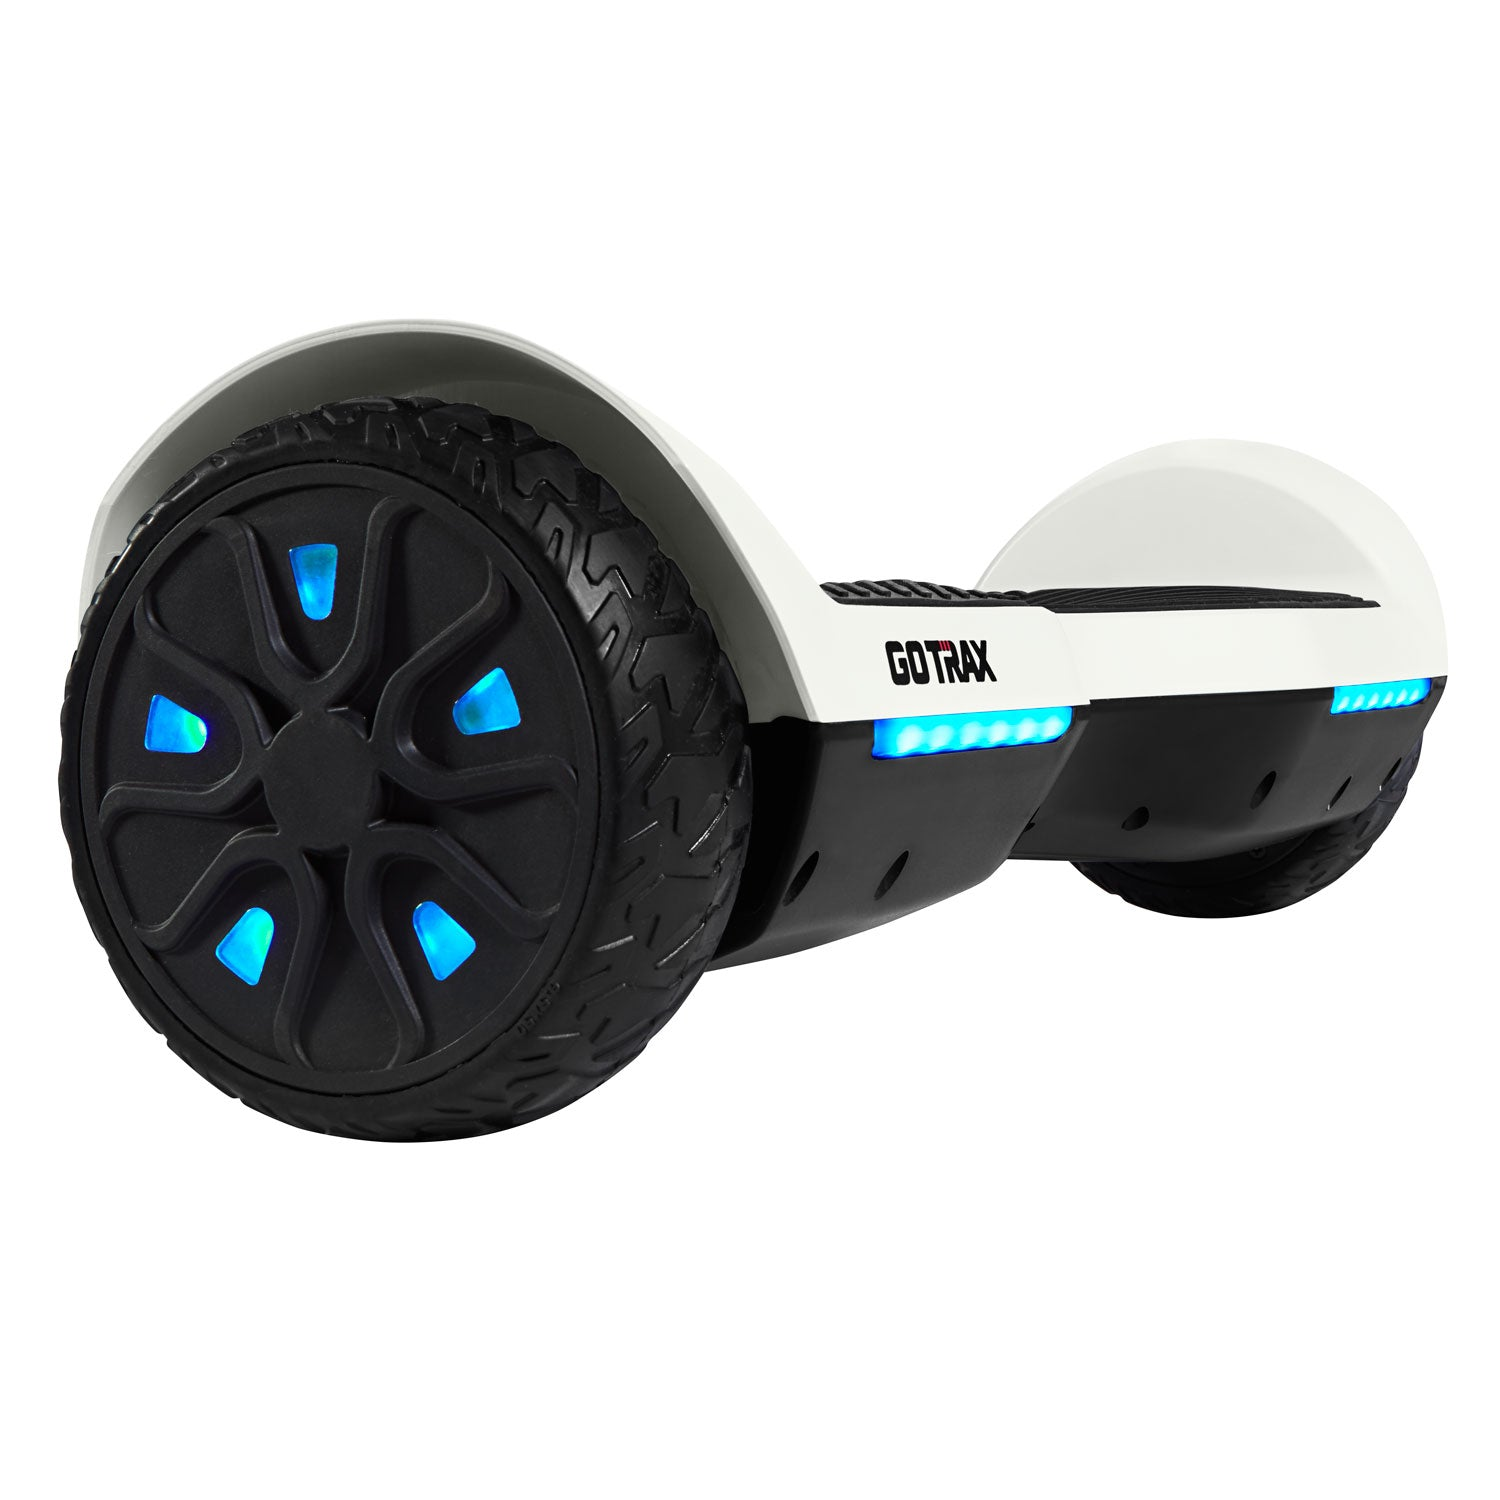 white srx a6 bluetooth hoverboard Main image